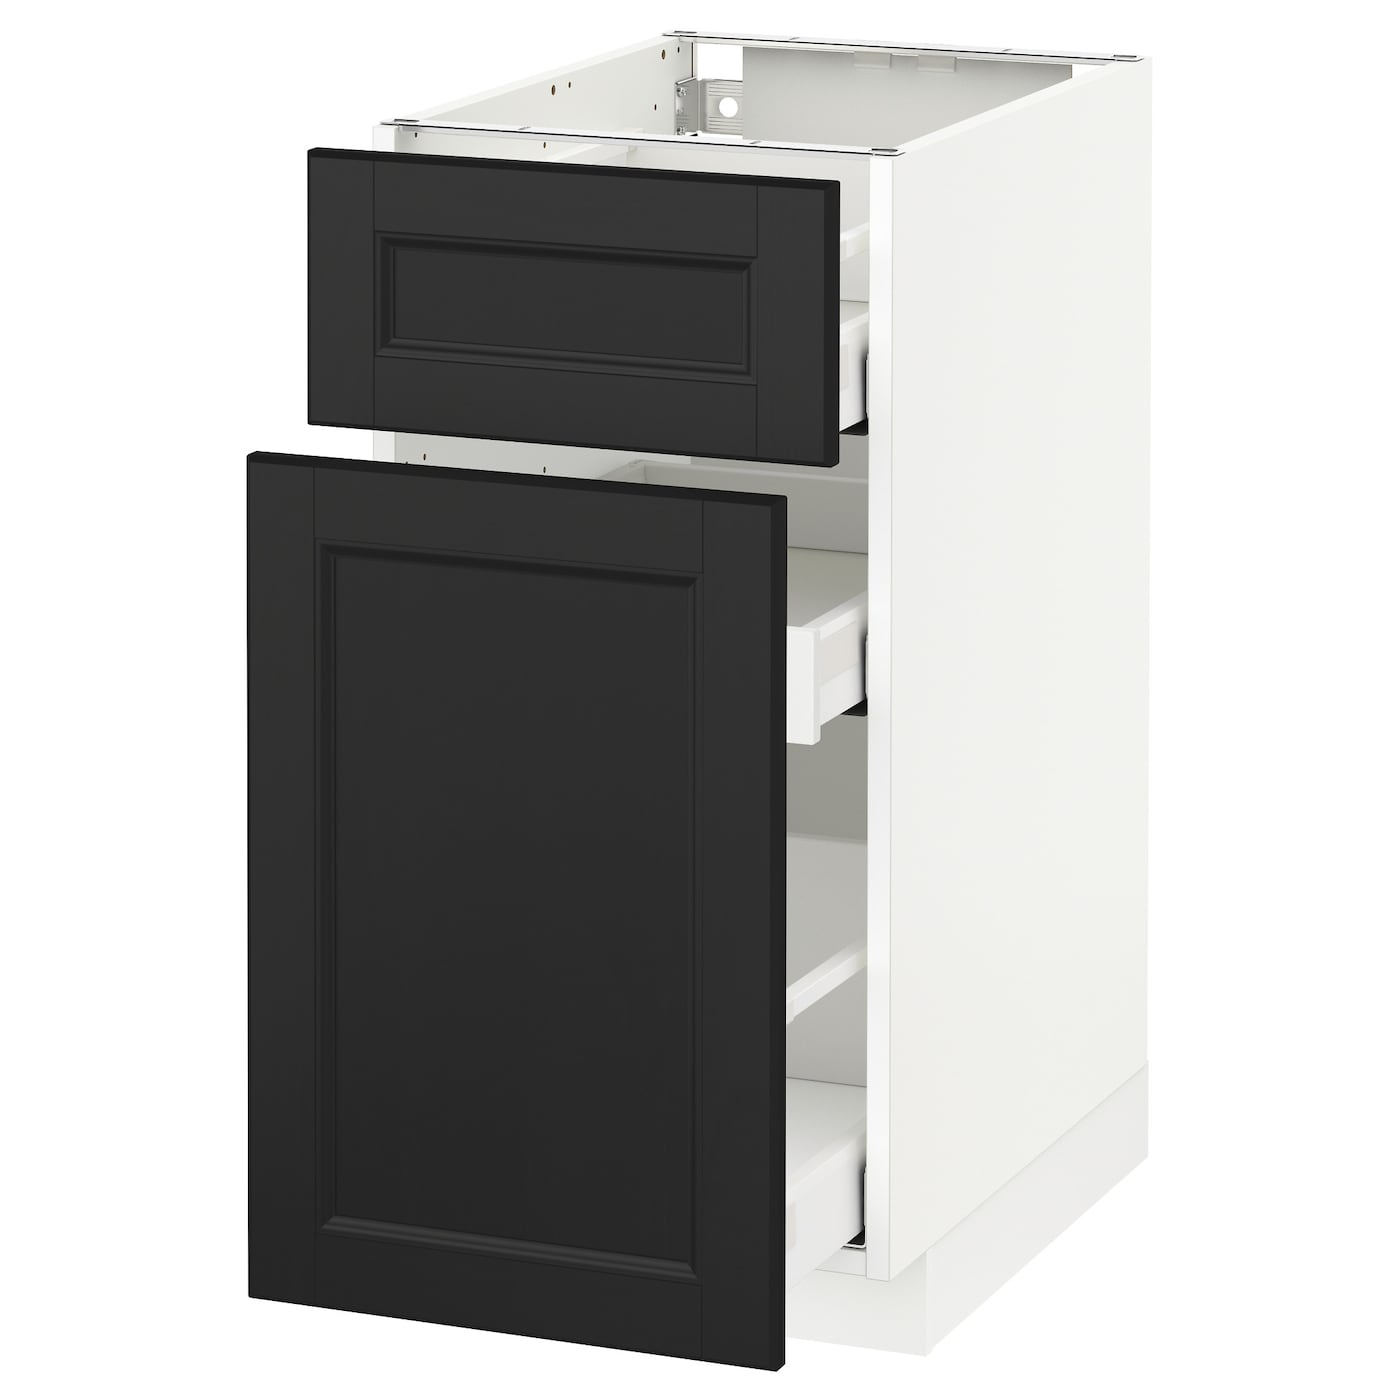 metod maximera base cabinet p out storage drawer white laxarby black brown 40x60 cm ikea. Black Bedroom Furniture Sets. Home Design Ideas